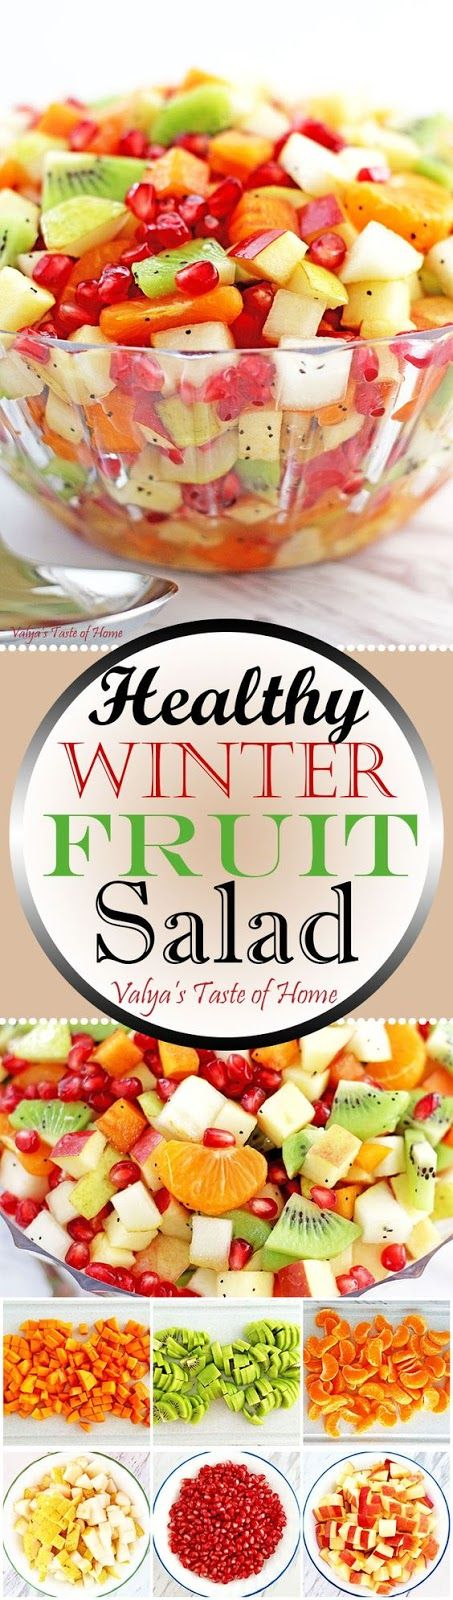 HEALTHY WINTER FRUIT SALAD - 45min to cook - 14 to 16 to serveHEALTHY WINTER FRUIT SALADHEALTHY WINTER FRUIT SALAD